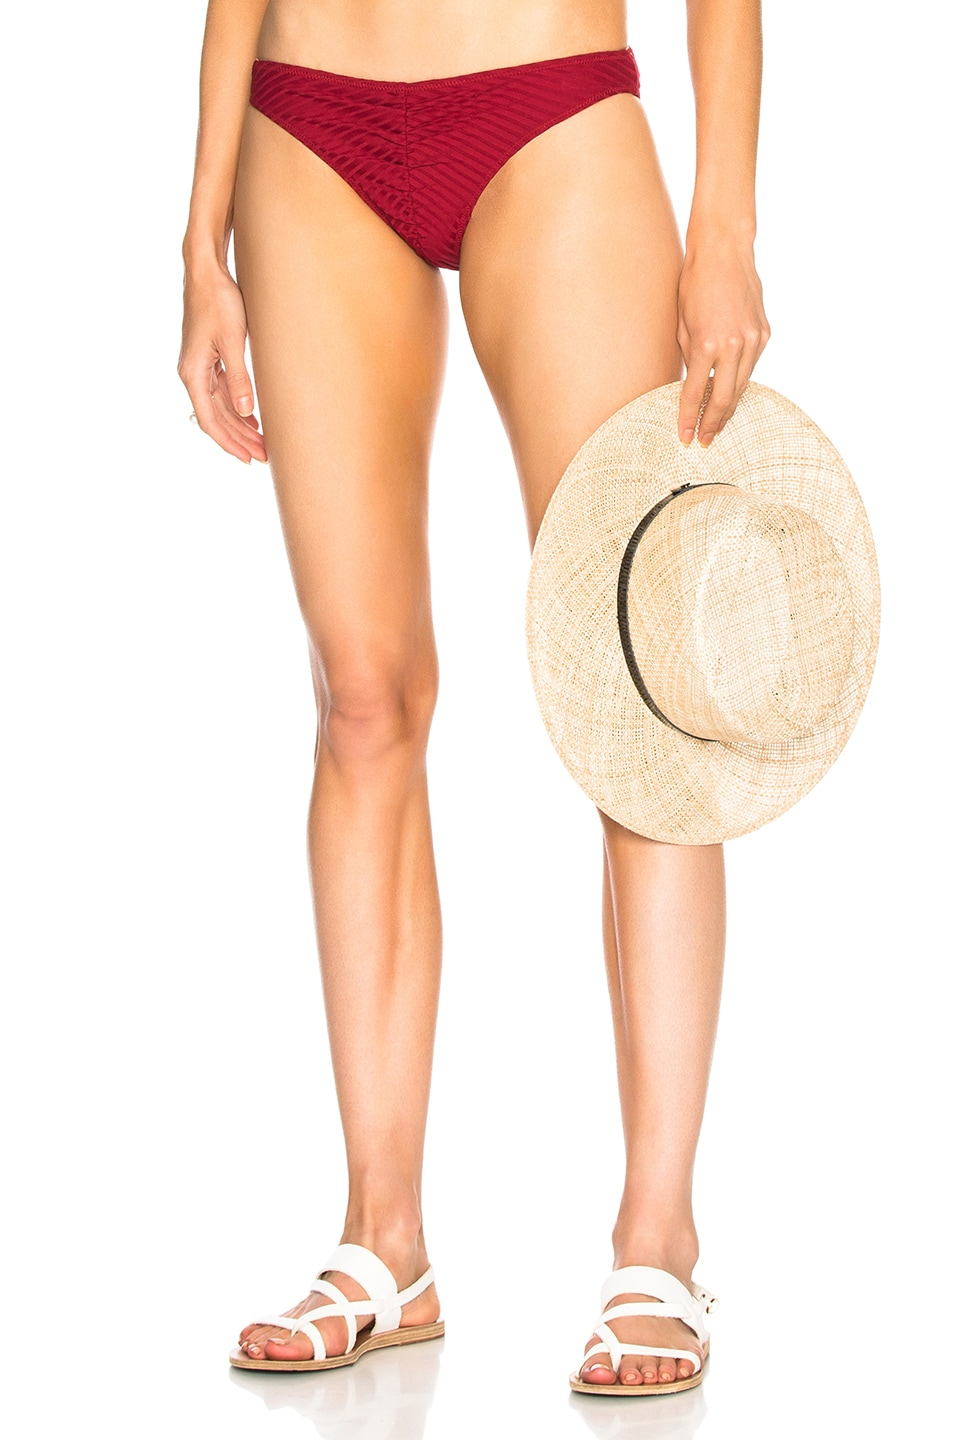 CALI DREAMING RUCHED PANDORA BOTTOM IN RED